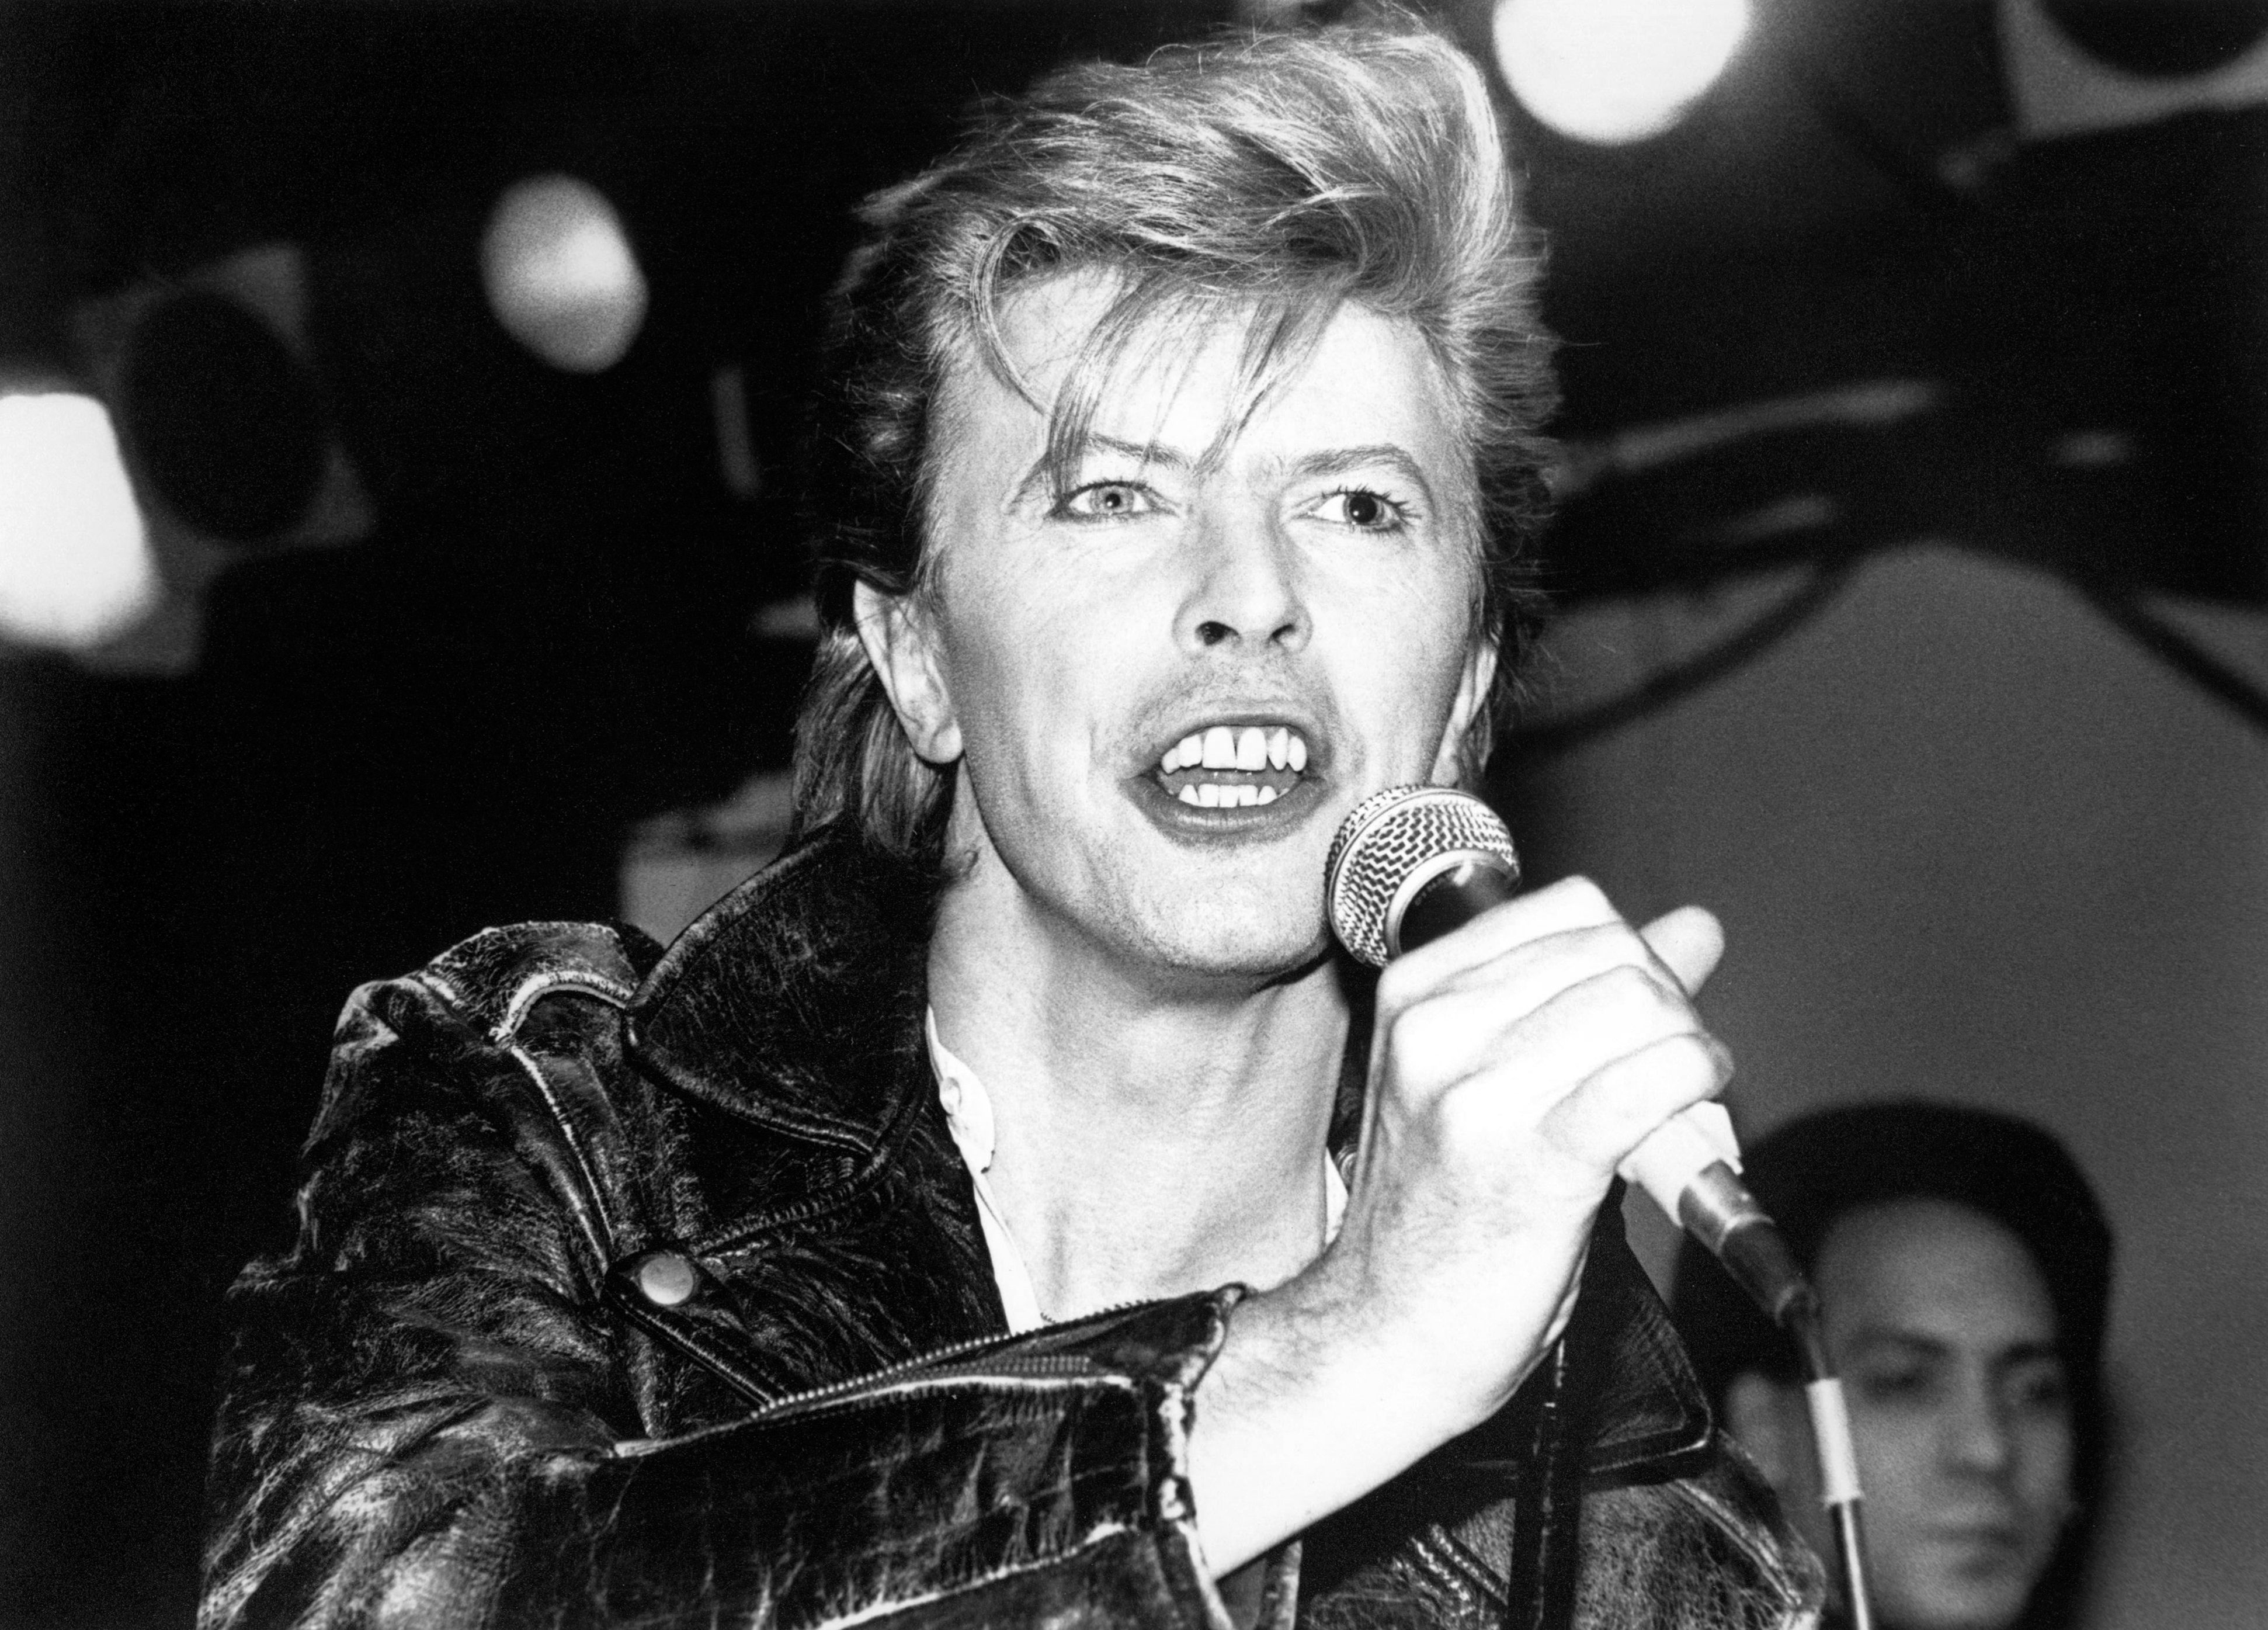 David Bowie's Mid-Eighties Work Collected for Massive 'Loving the Alien' Box Set